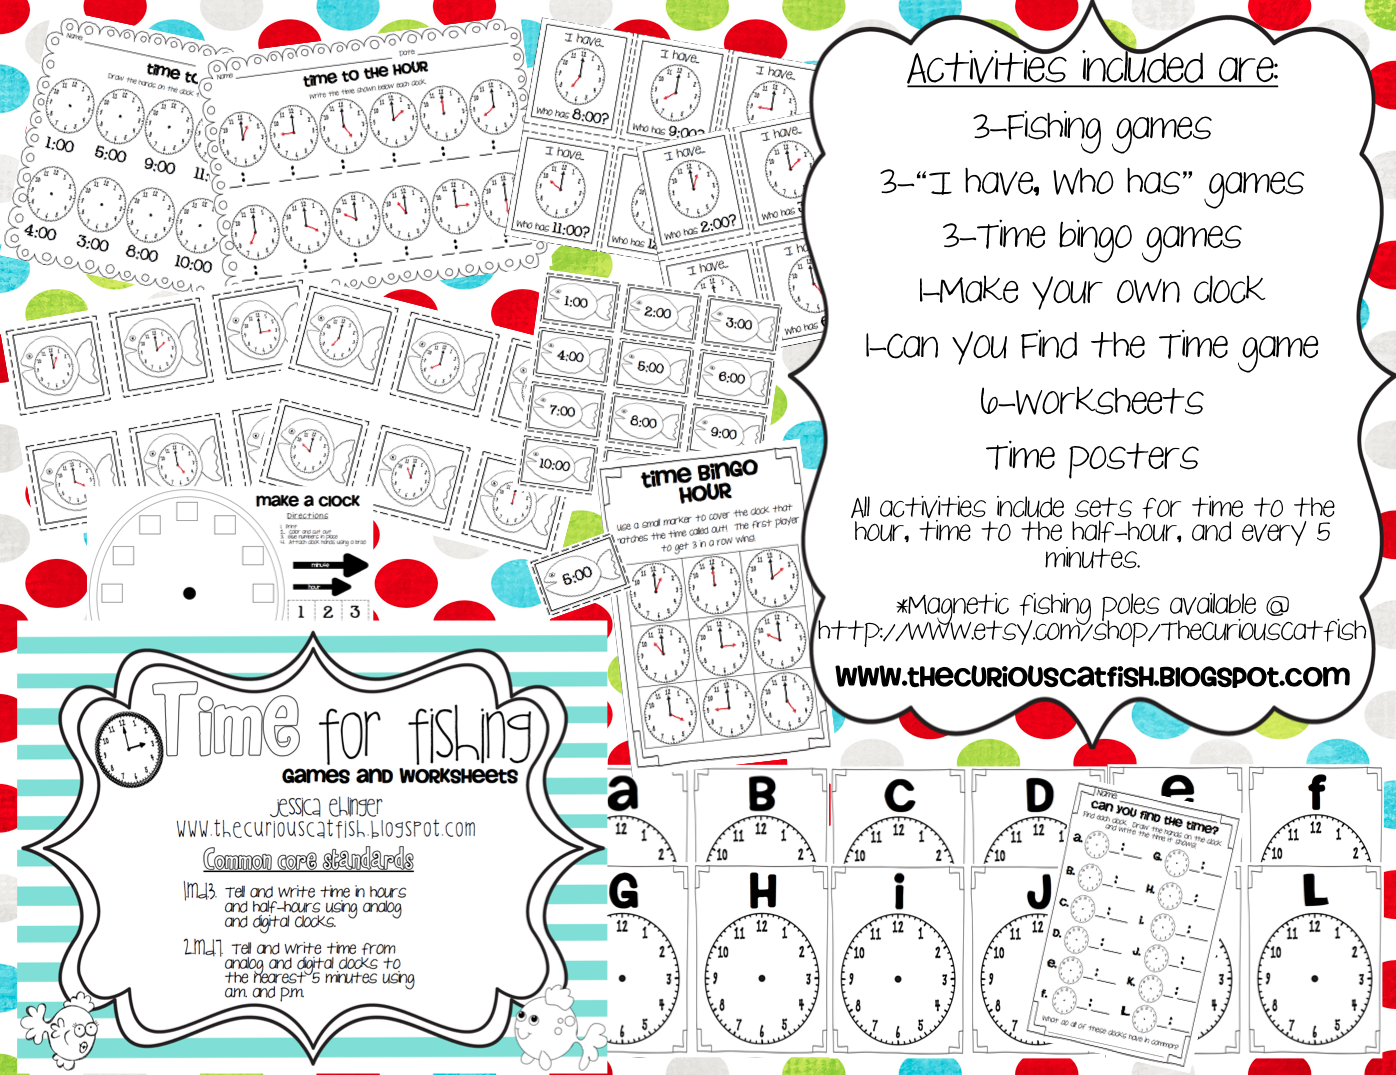 Time for Fishing Games and Worksheets The Curious Catfish – Motivation Worksheets